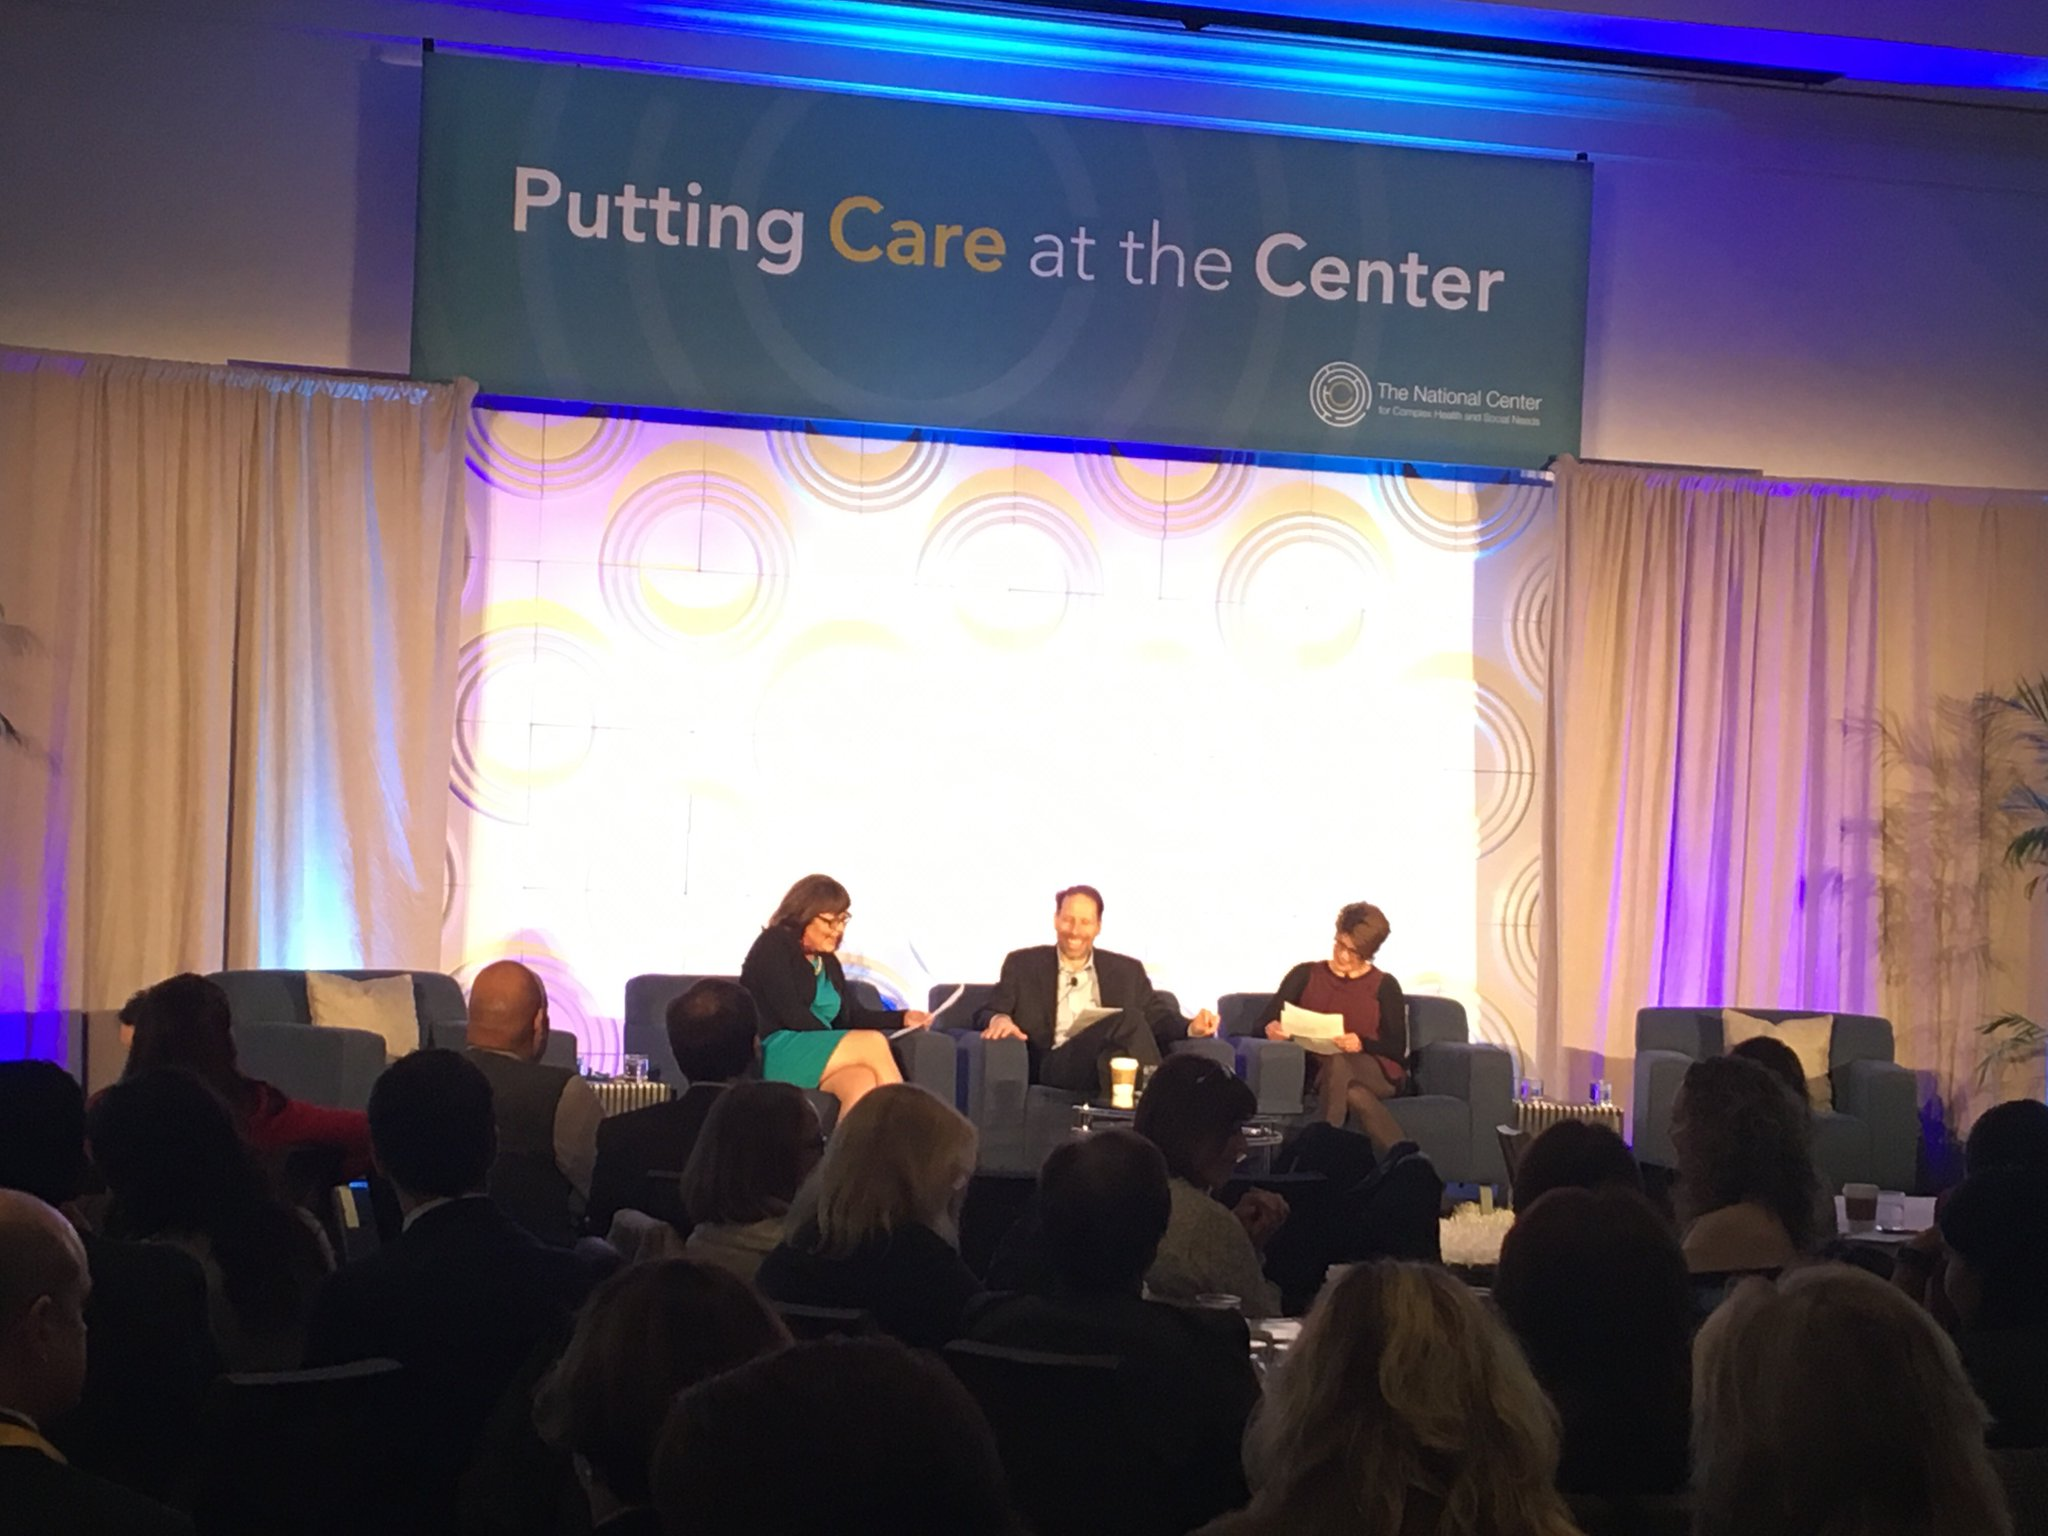 Dr. Jeff Brenner, Lauran Hardin, and Shelly Virva opening up #CenteringCare https://t.co/c4NEX1hjcZ